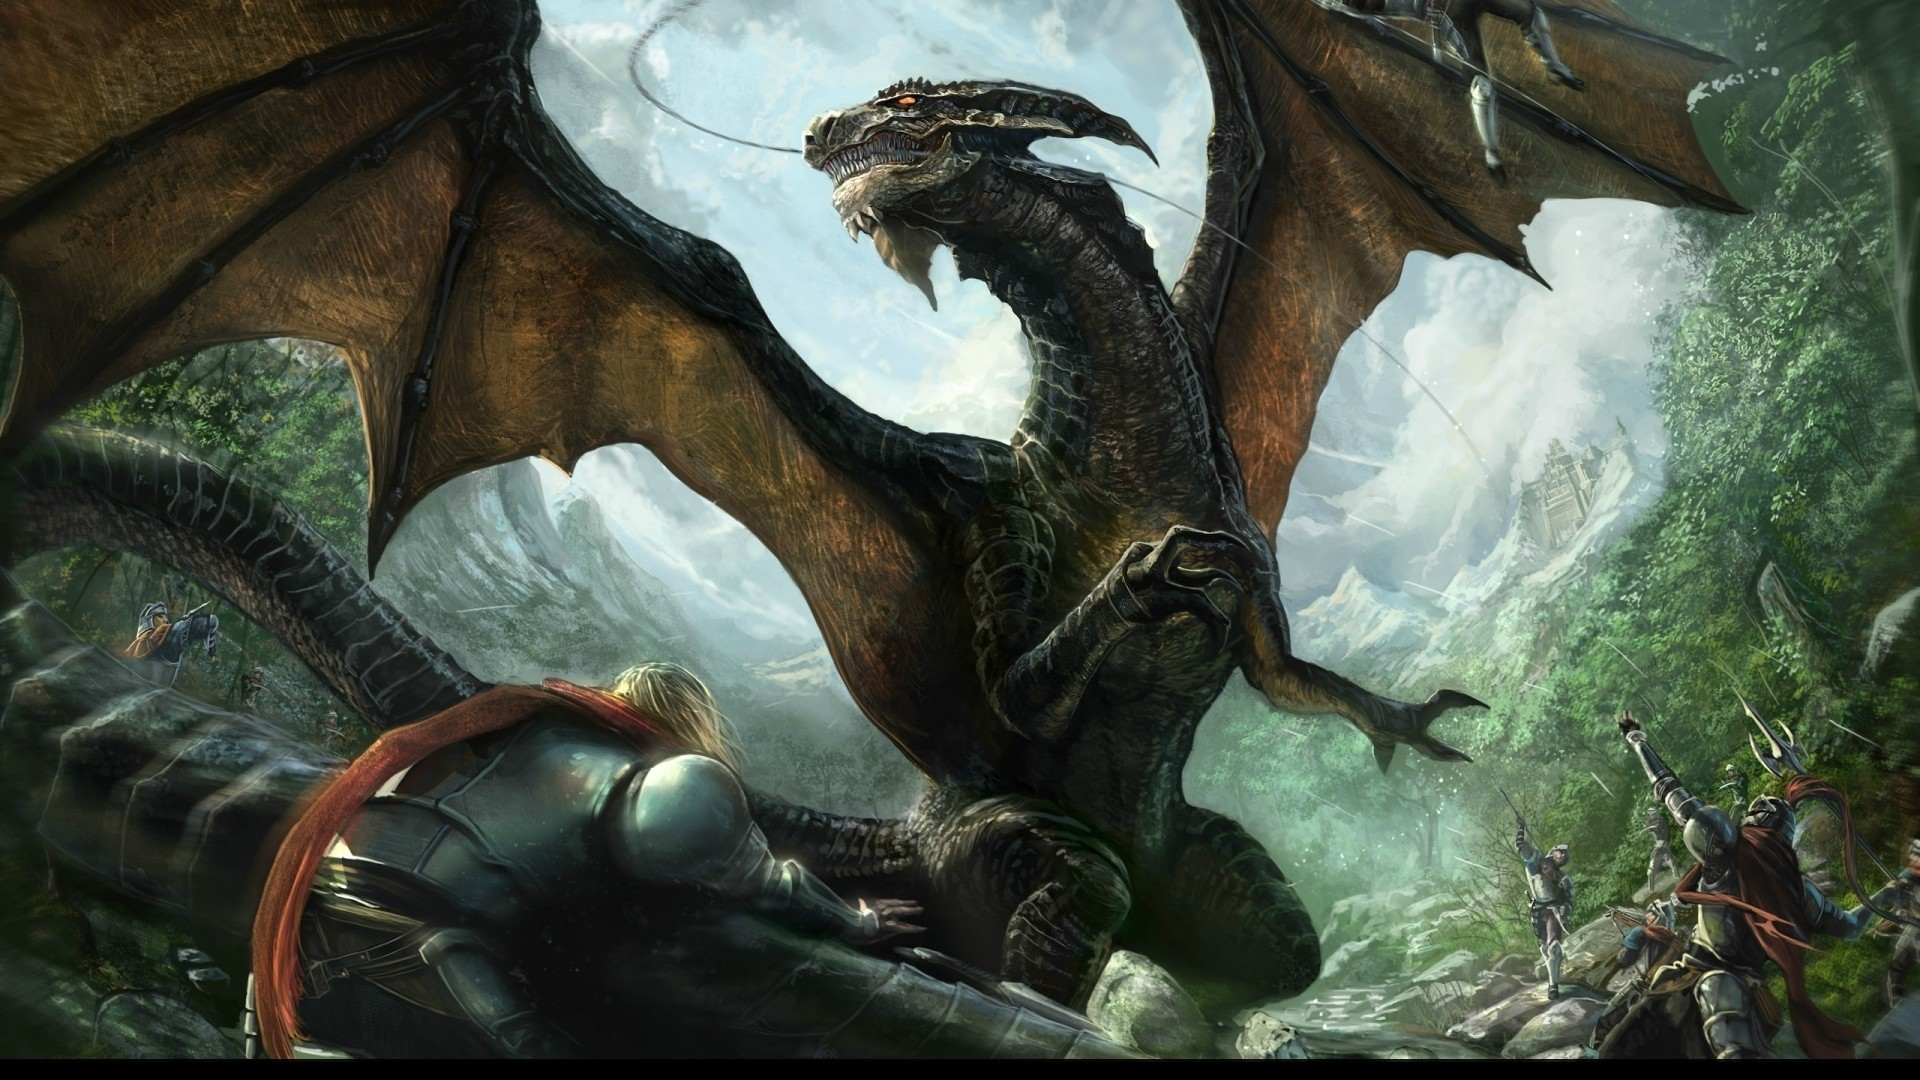 Res: 1920x1080, 6. cool-dragon-wallpapers-HD6-600x338